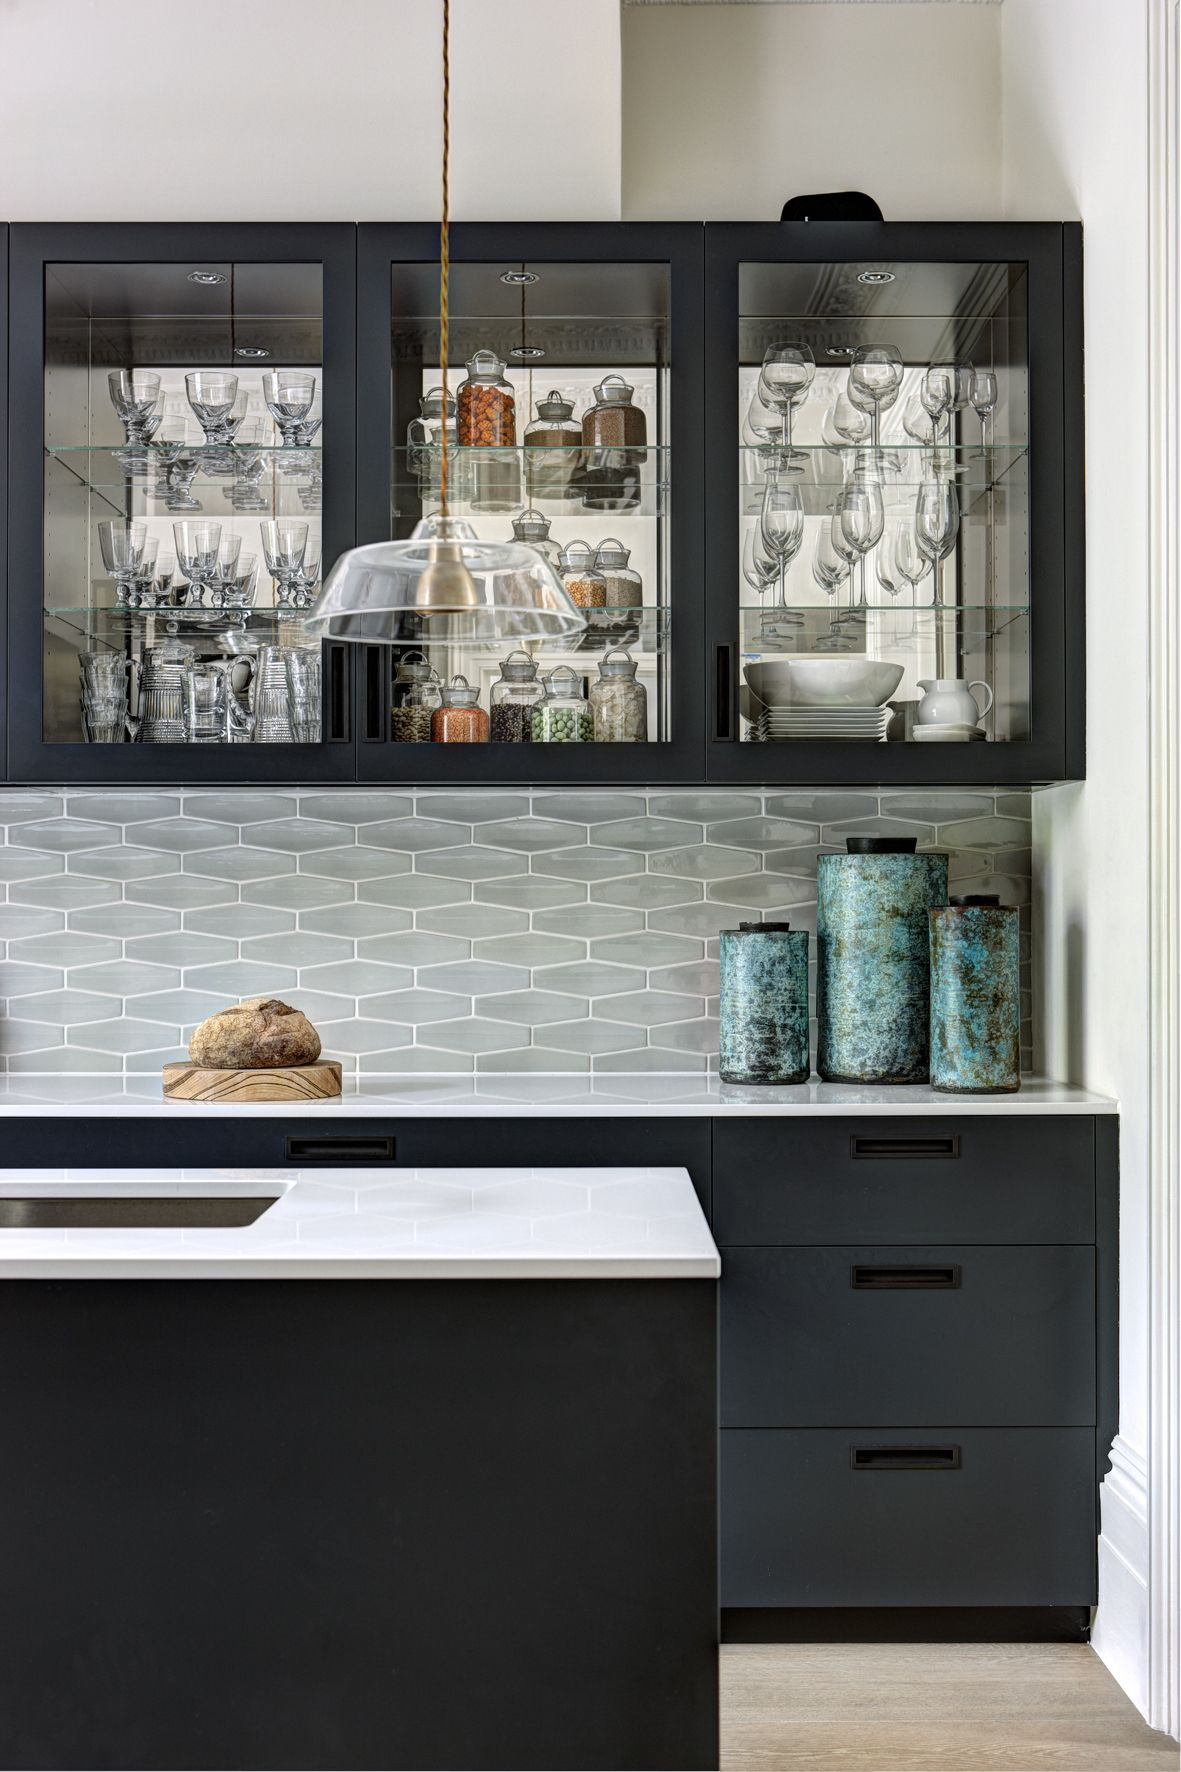 Helen green design kitchen tiles colour of units and worksurface